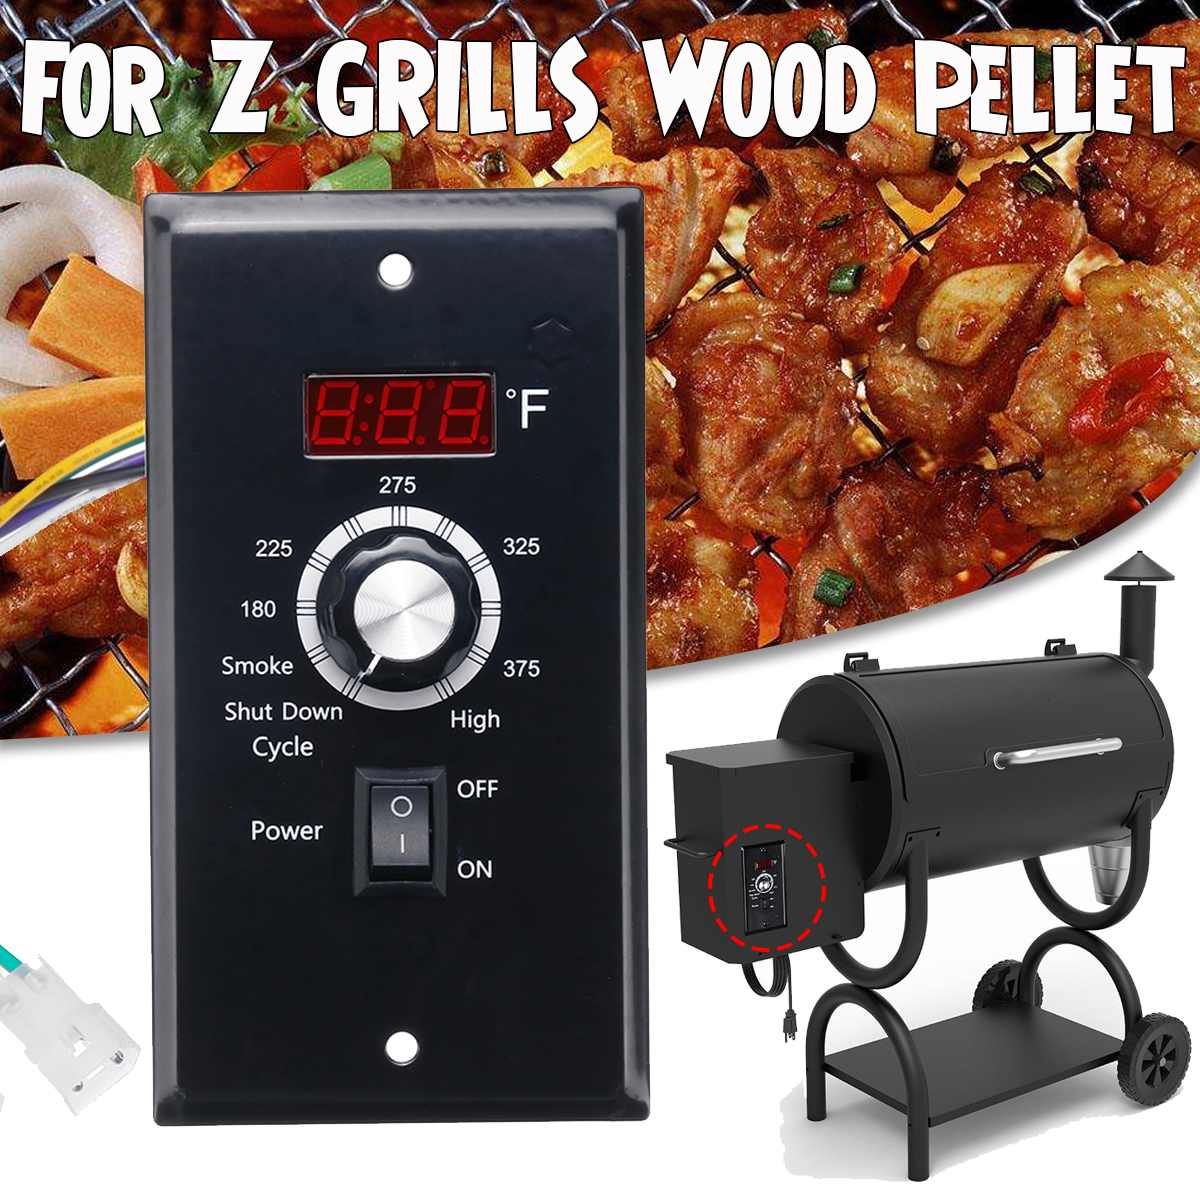 Replacement 120V Digital Temperature Controller Thermostat Board For Z GRILL Wood Pellet BBQ Smoker Grill Integrated CircuitsReplacement 120V Digital Temperature Controller Thermostat Board For Z GRILL Wood Pellet BBQ Smoker Grill Integrated Circuits